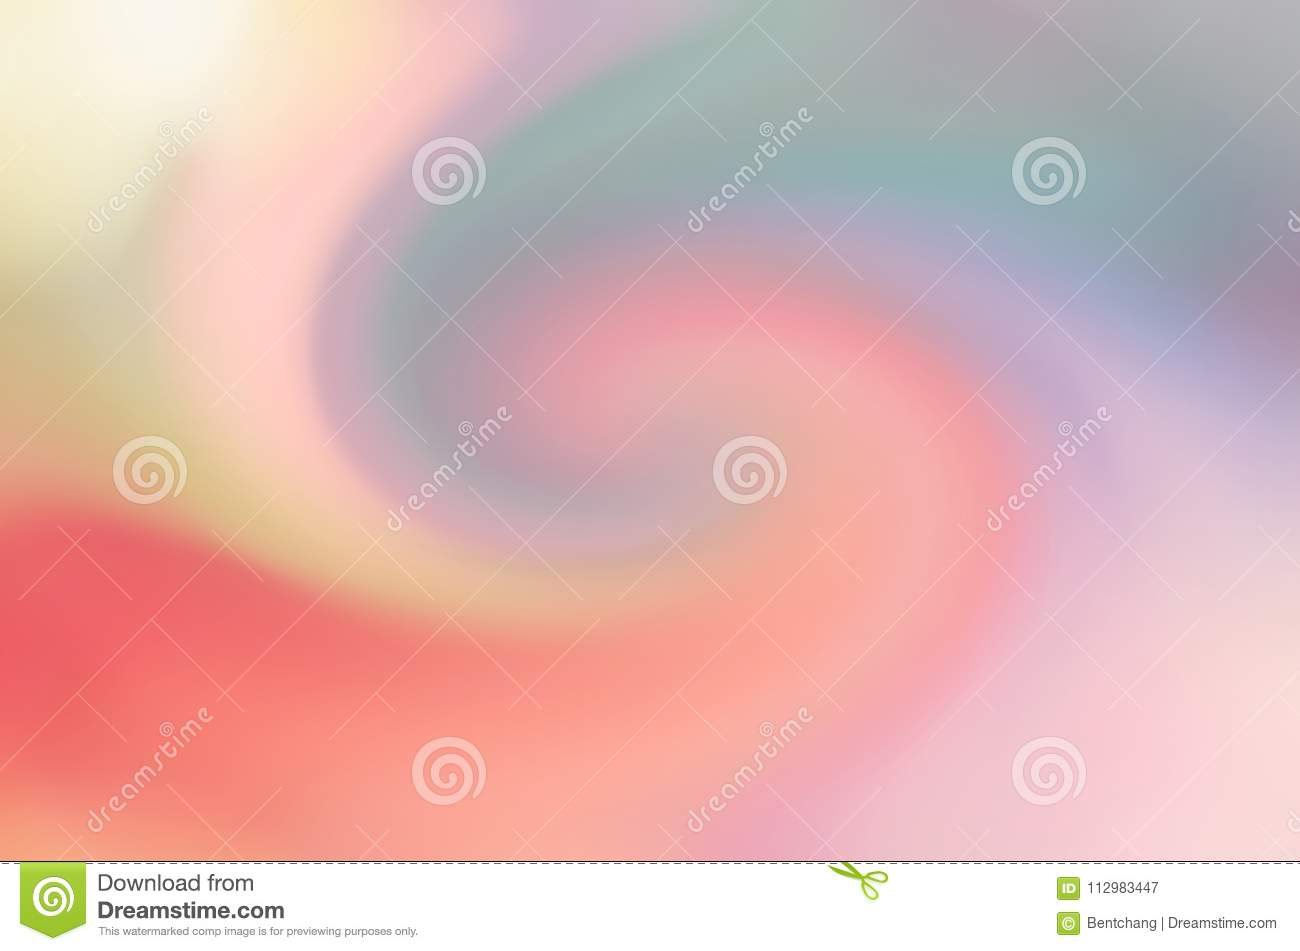 Background for graphic design, blur motion. Movement, red, twirl & bubble.